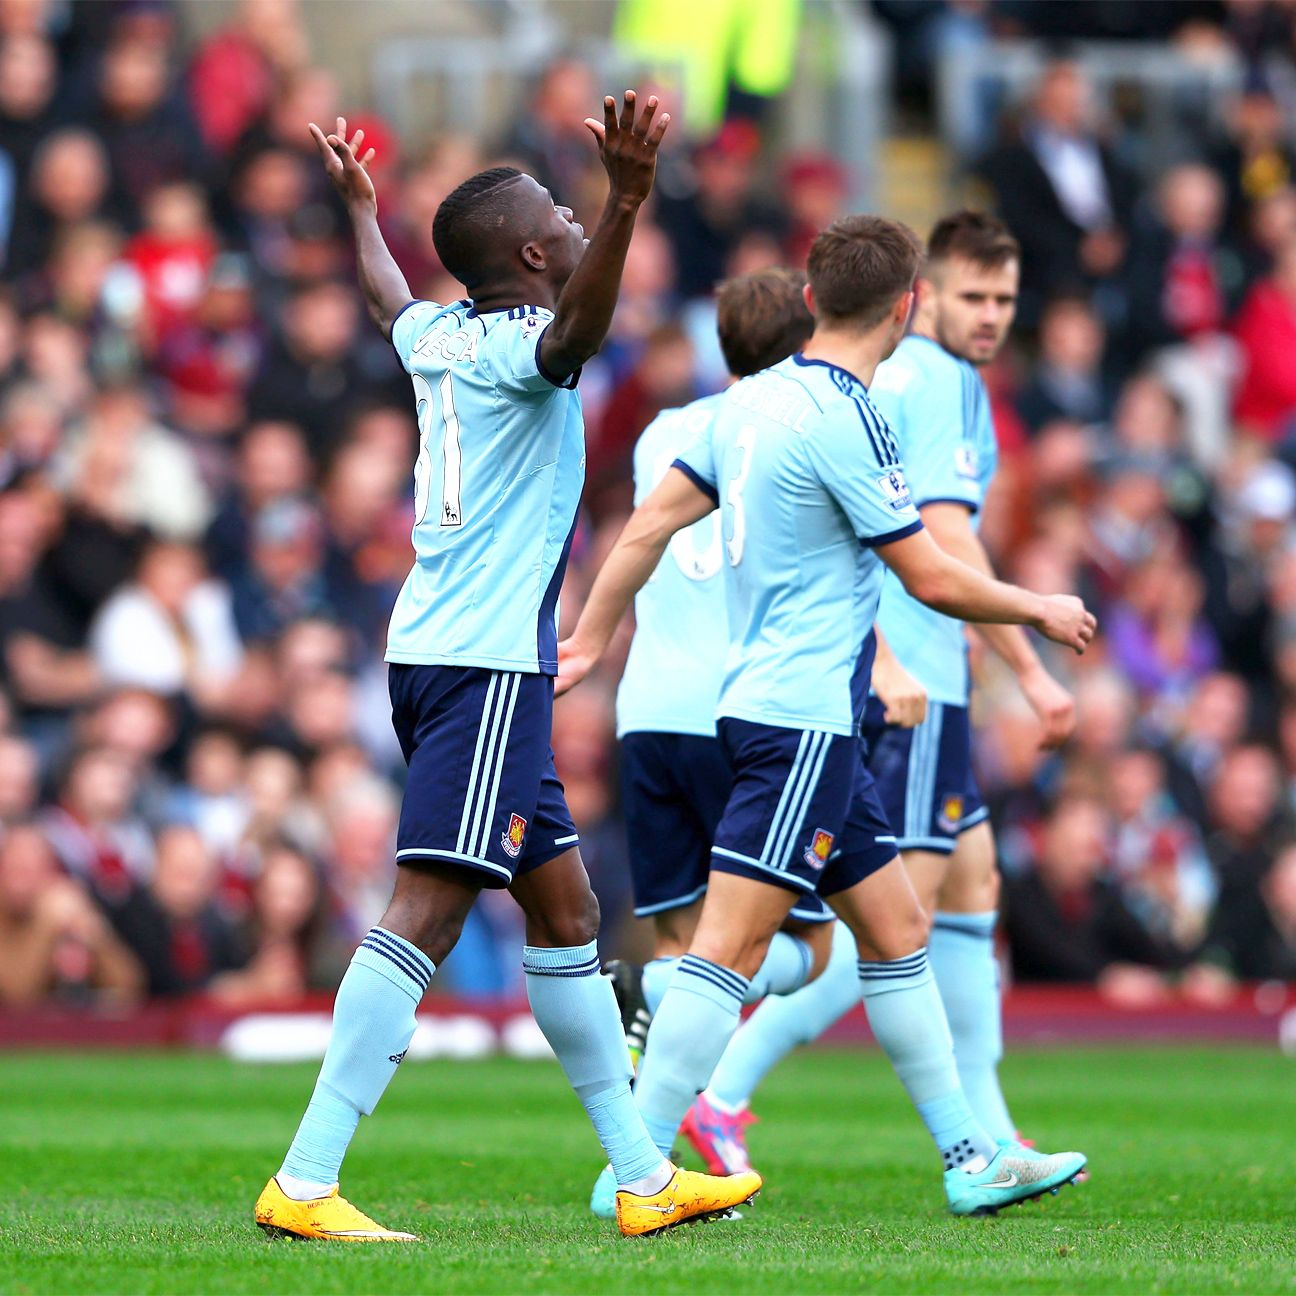 Enner Valencia continued the bright start to his West Ham career with another goal.